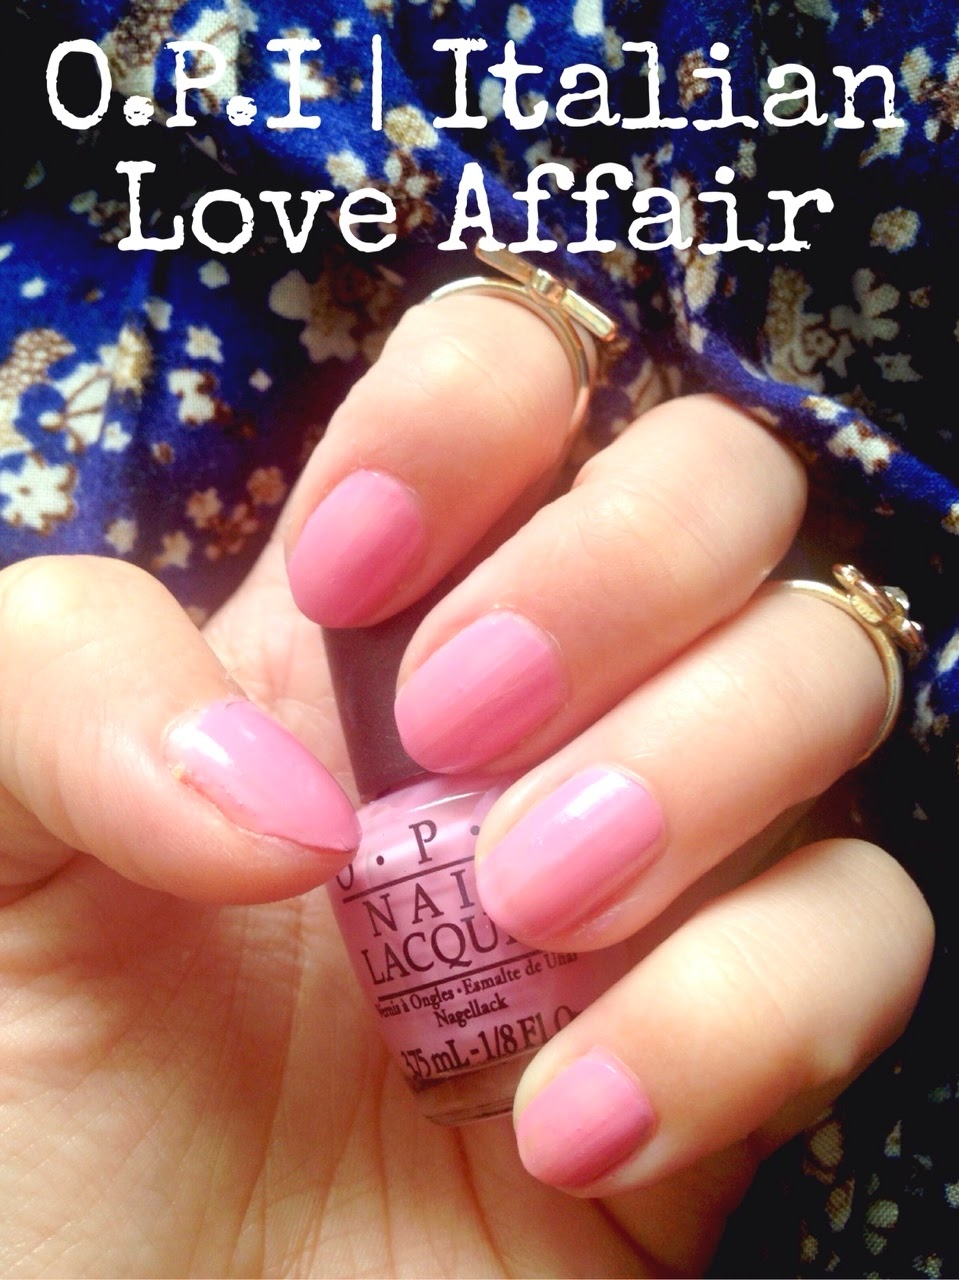 Inspire Magazine Online - UK Fashion, Beauty & Lifestyle blog | Nails Of The Week // O.P.I 'Italian love Affair'; Inspire Magazine; Inspire Magazine Online; NOTW; Nails Of The Week; O.P.I; O.P.I Nail Varnish; Italian Love Affair; Italian Love Affair by O.P.I